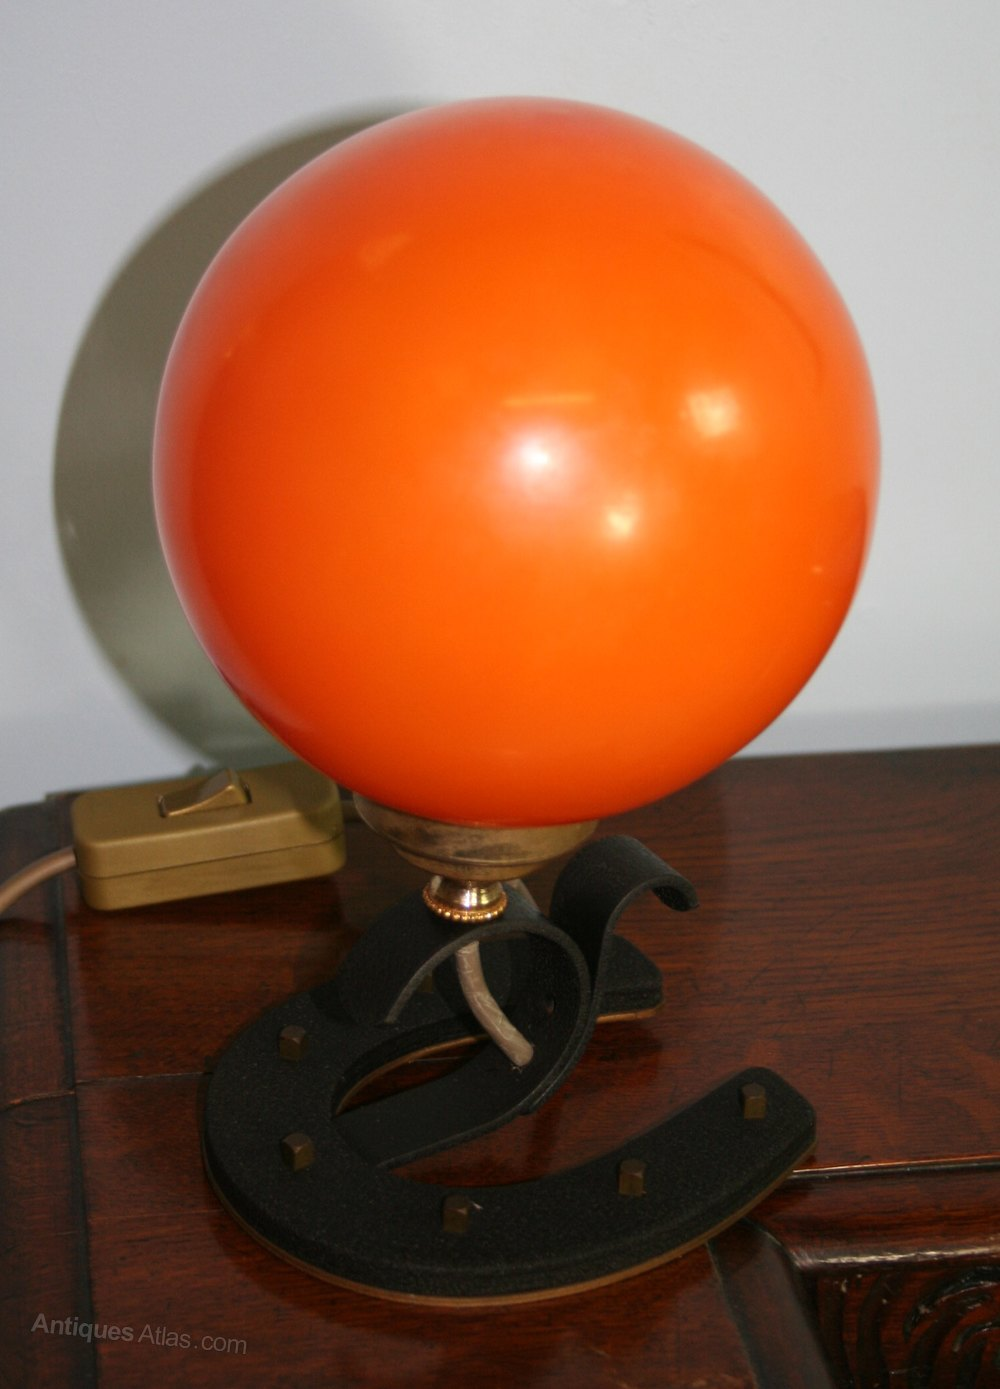 1960s Novelty Lighting Lamp : Antiques Atlas - Novelty 1960s Saloon Small Table Lamp